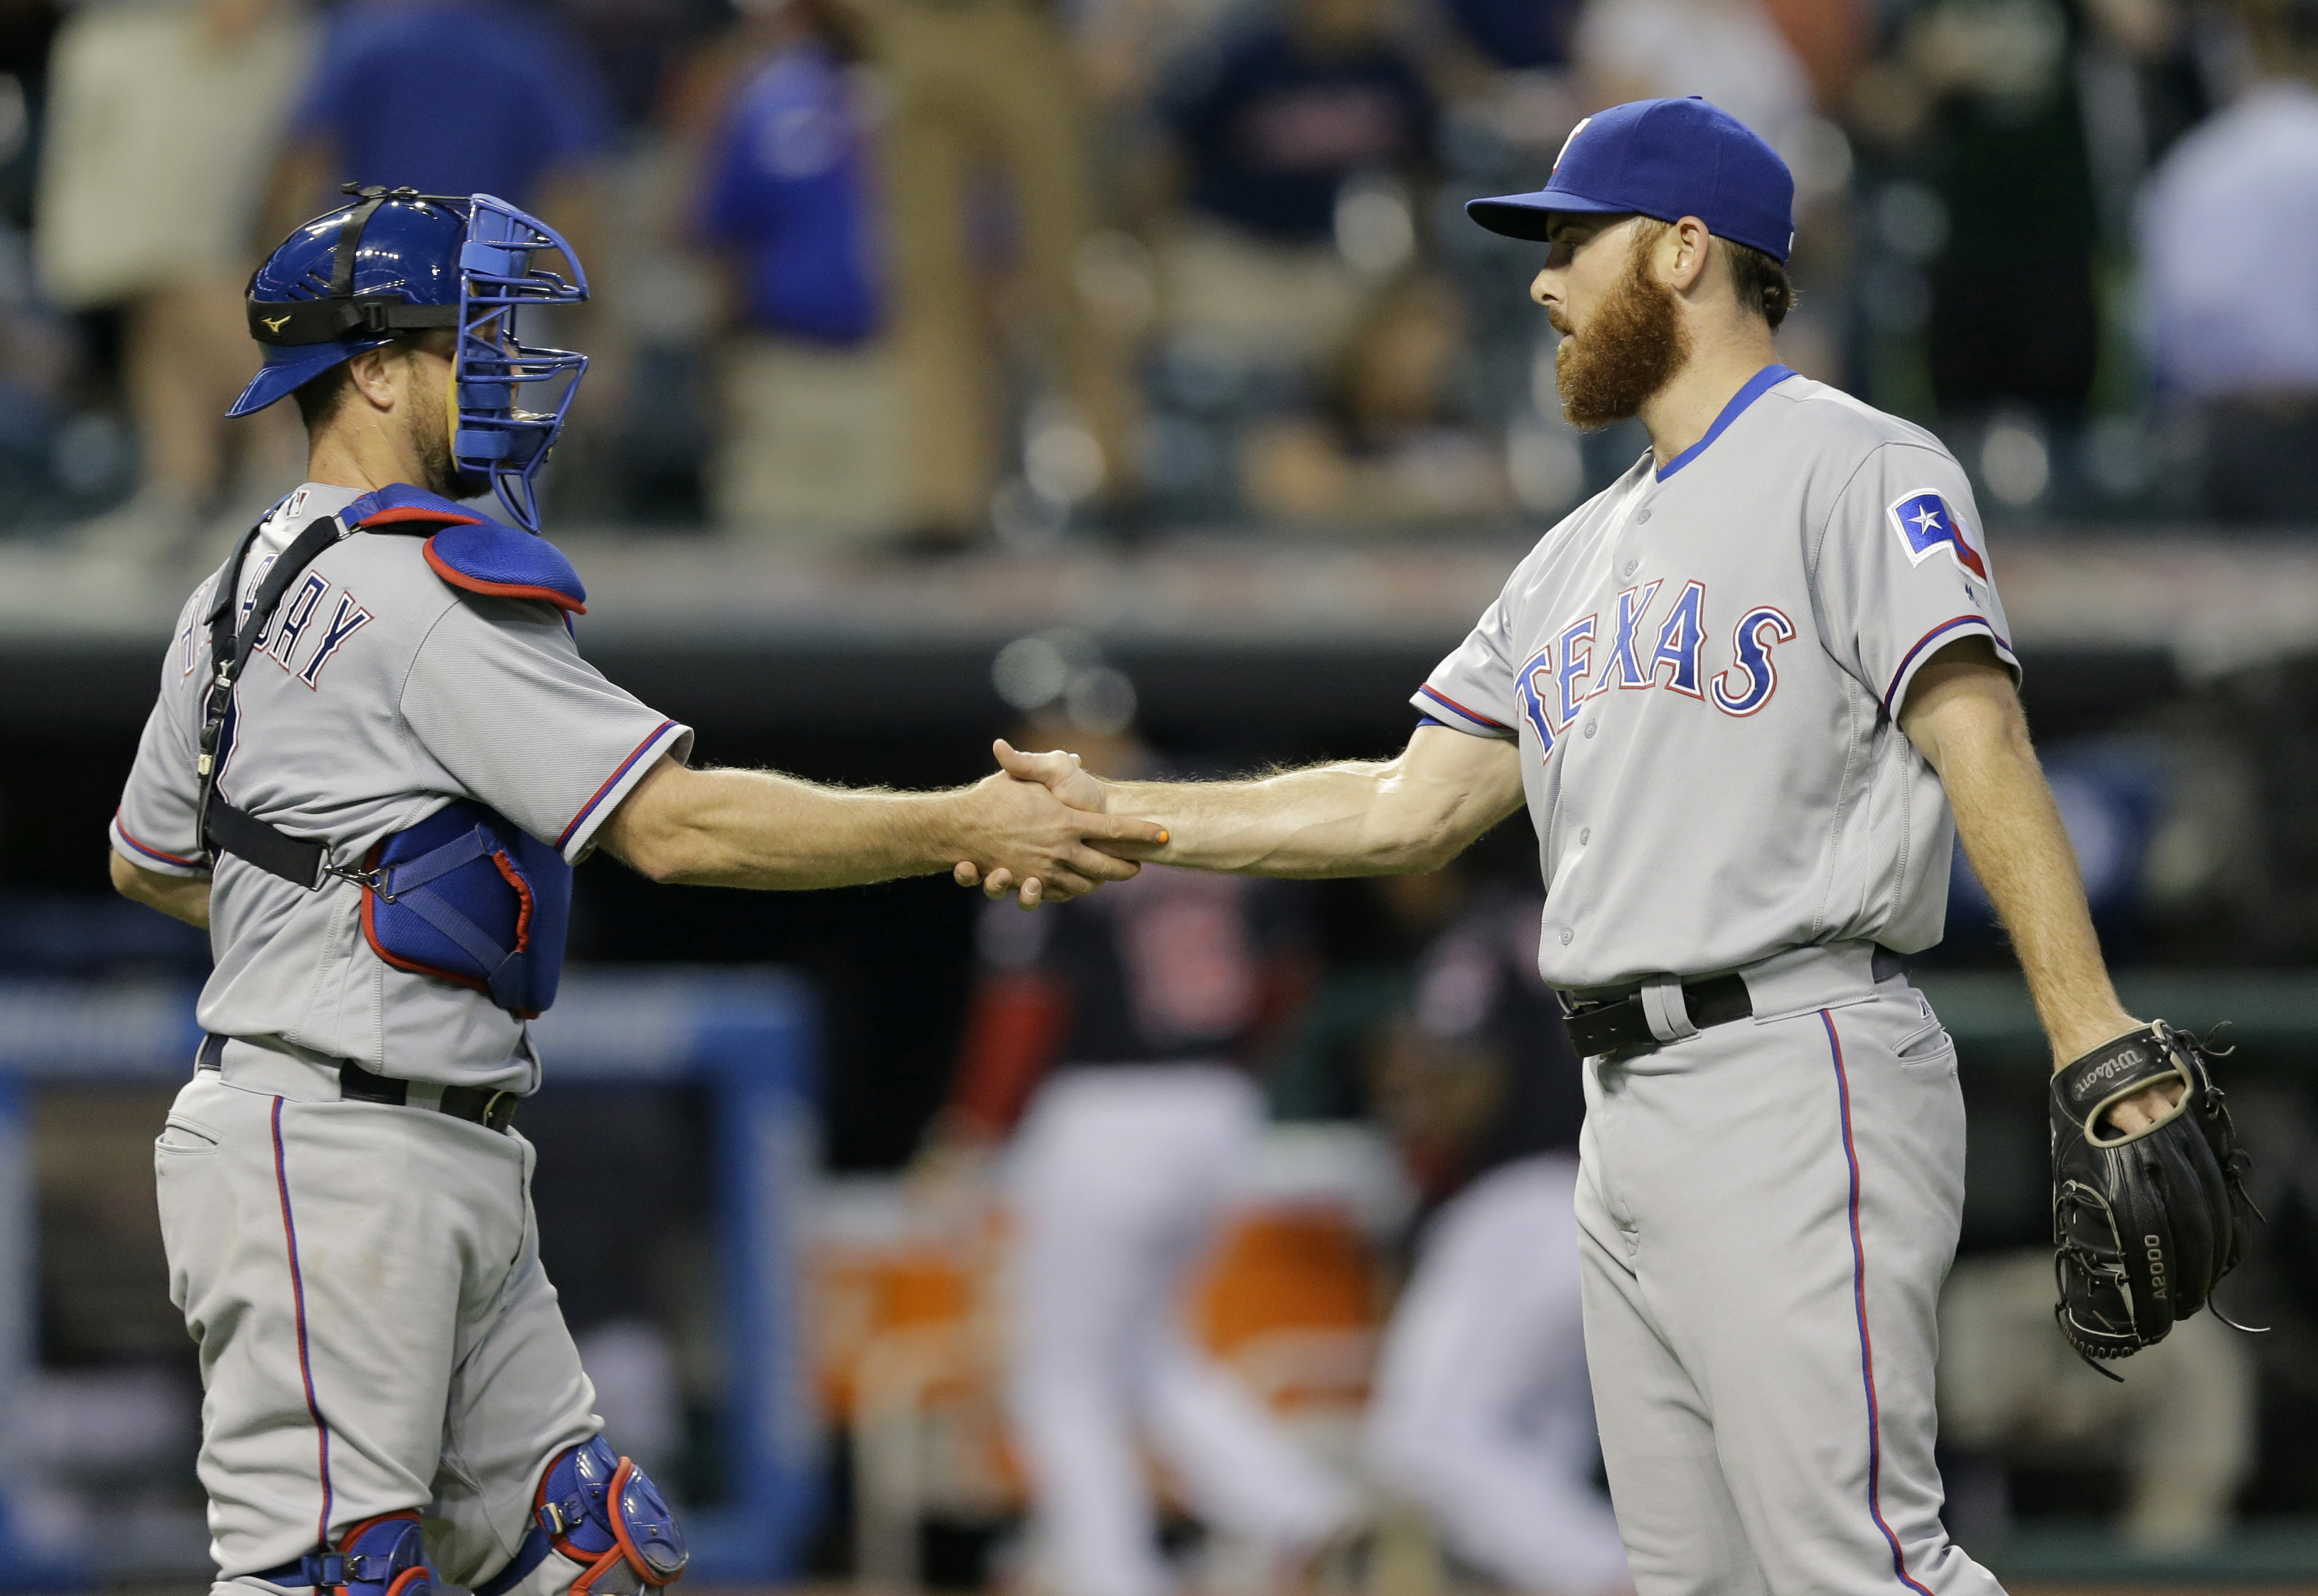 Texas Rangers relief pitcher Sam Dyson, right, and catcher Bryan Holaday celebrate after the Rangers defeated the Cleveland Indians 7-3 in a baseball game, Tuesday, May 31, 2016, in Cleveland. (AP Photo/Tony Dejak)